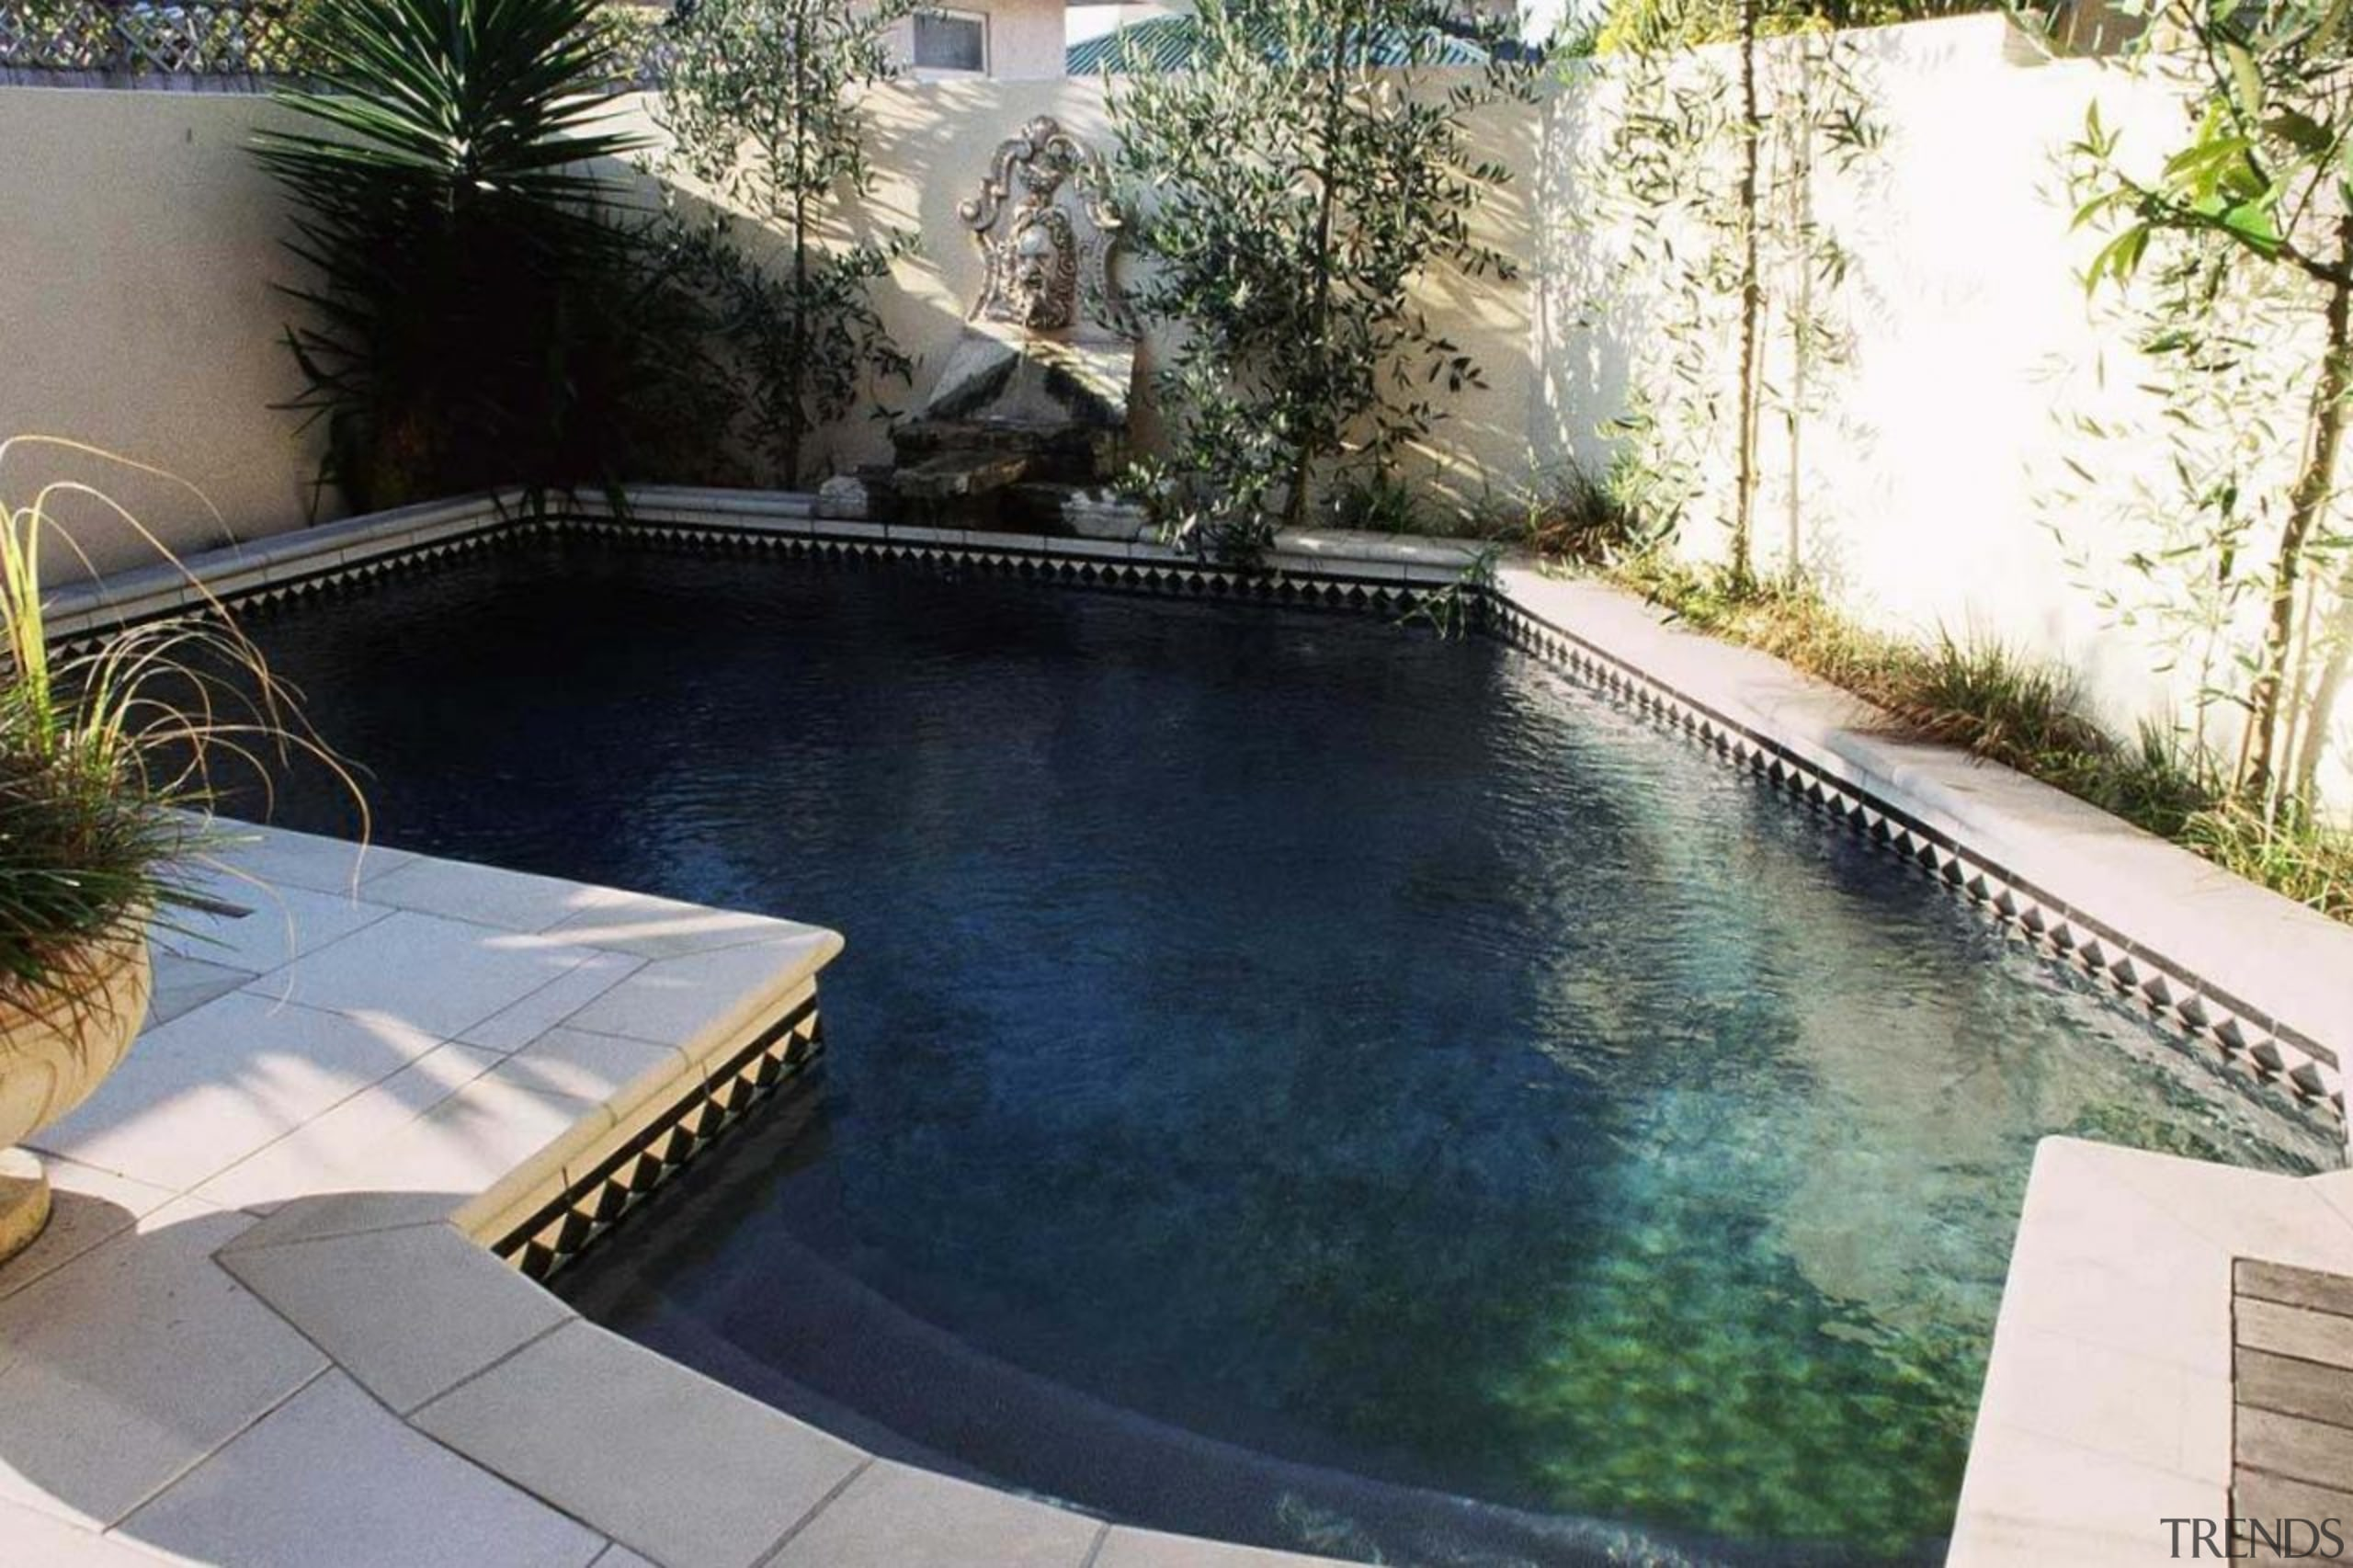 Cutting down on chemicals - backyard | courtyard backyard, courtyard, estate, grass, home, house, landscaping, leisure, property, real estate, reflecting pool, swimming pool, water feature, yard, black, gray